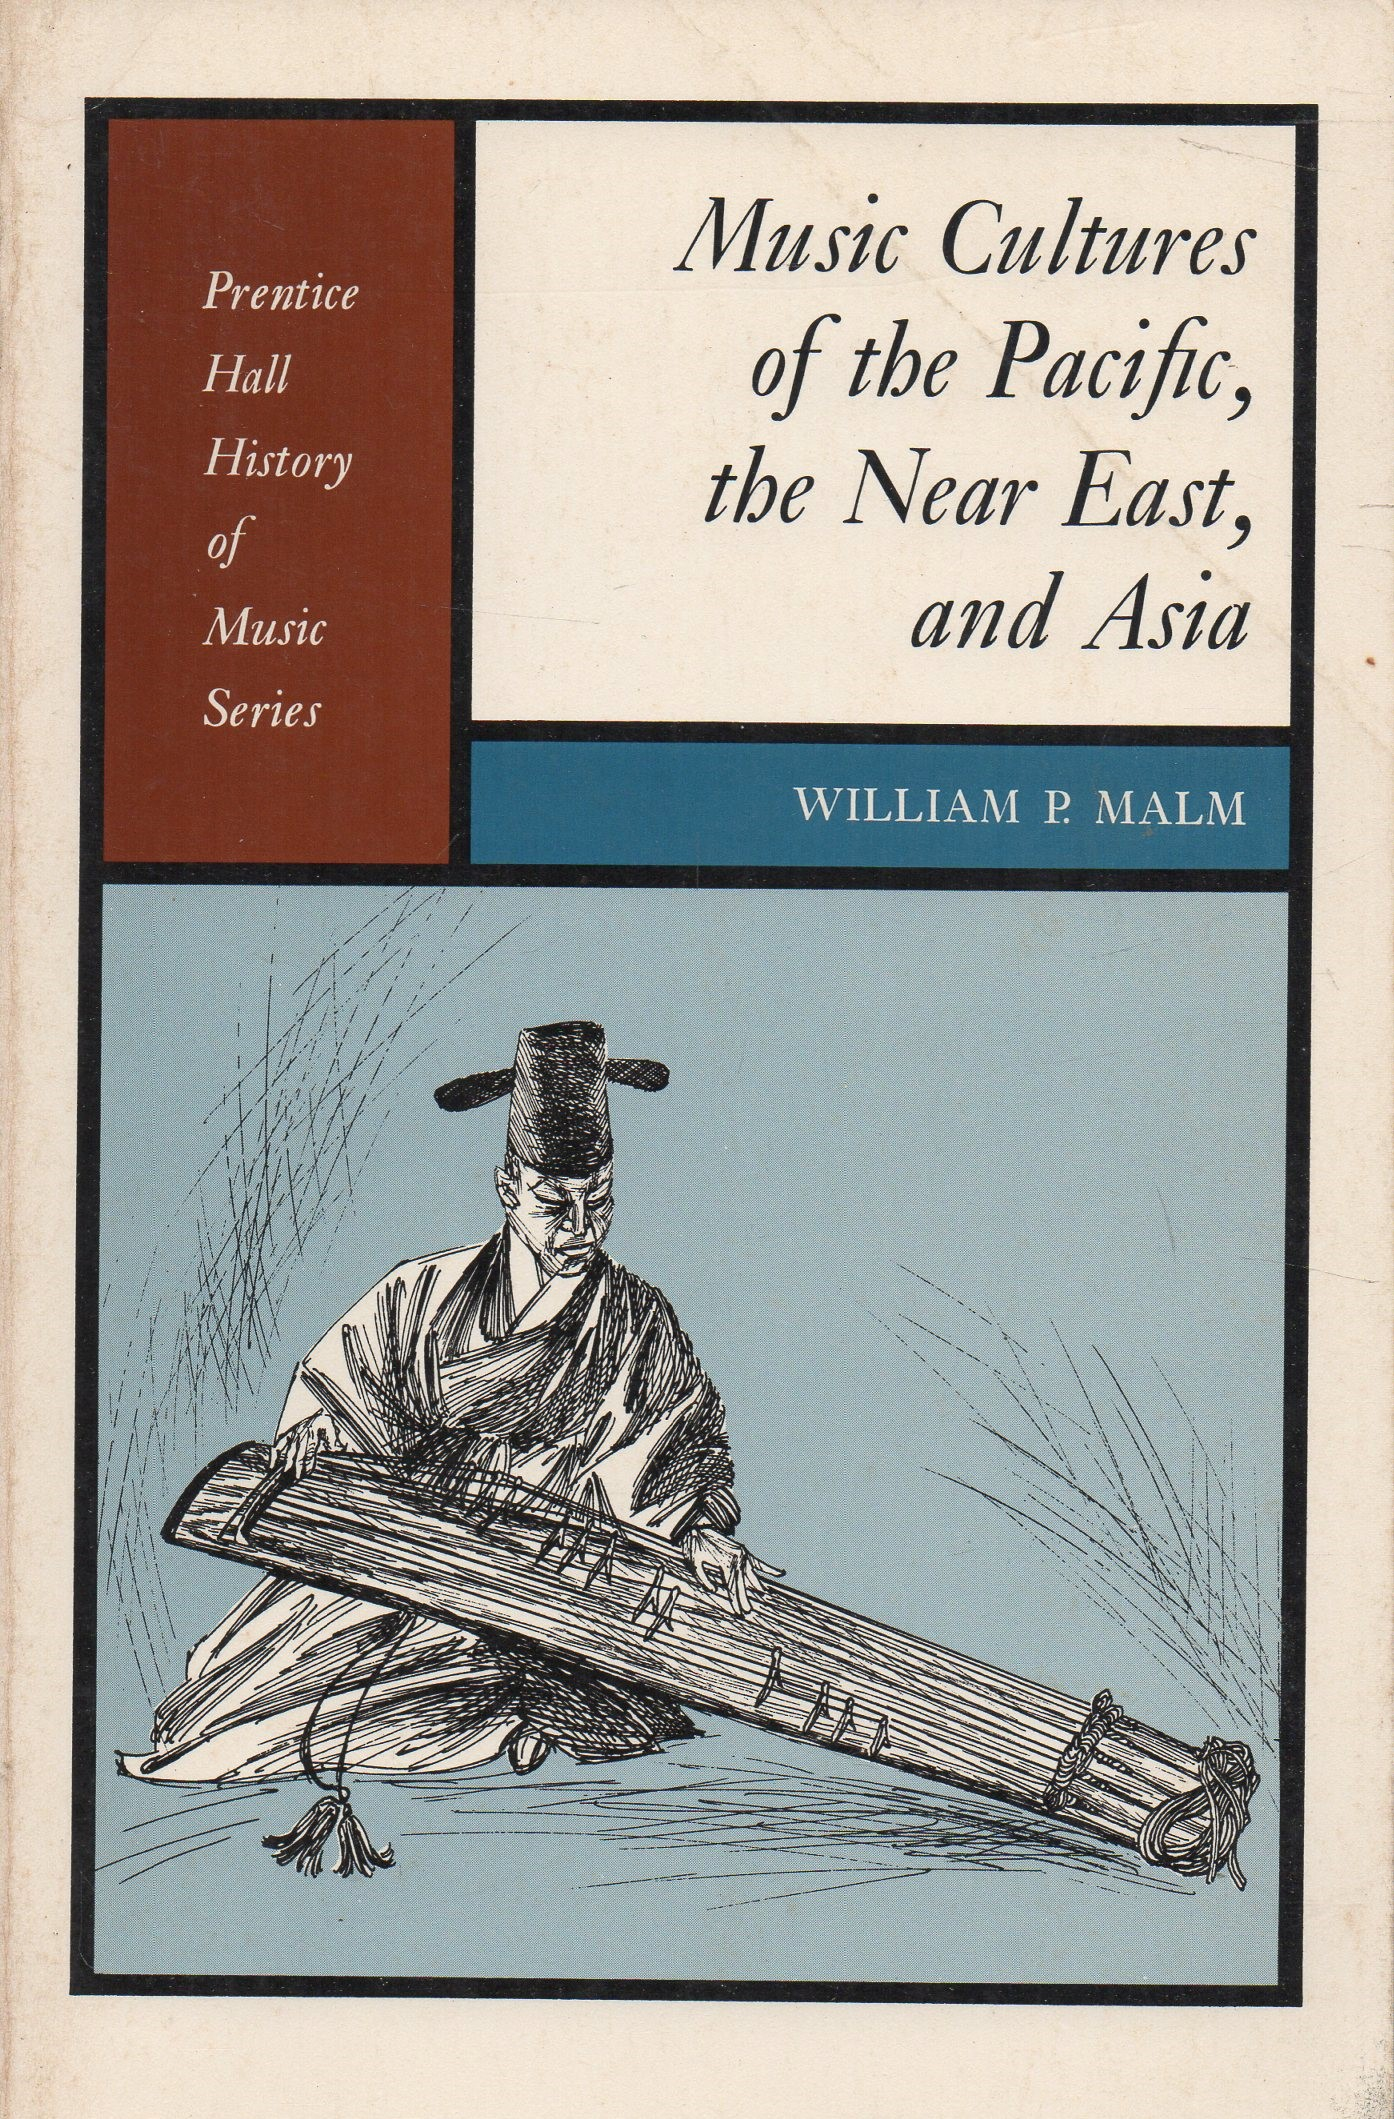 MALM, WILLIAM P - Music Cultures of the Pacific, the Near East and Asia